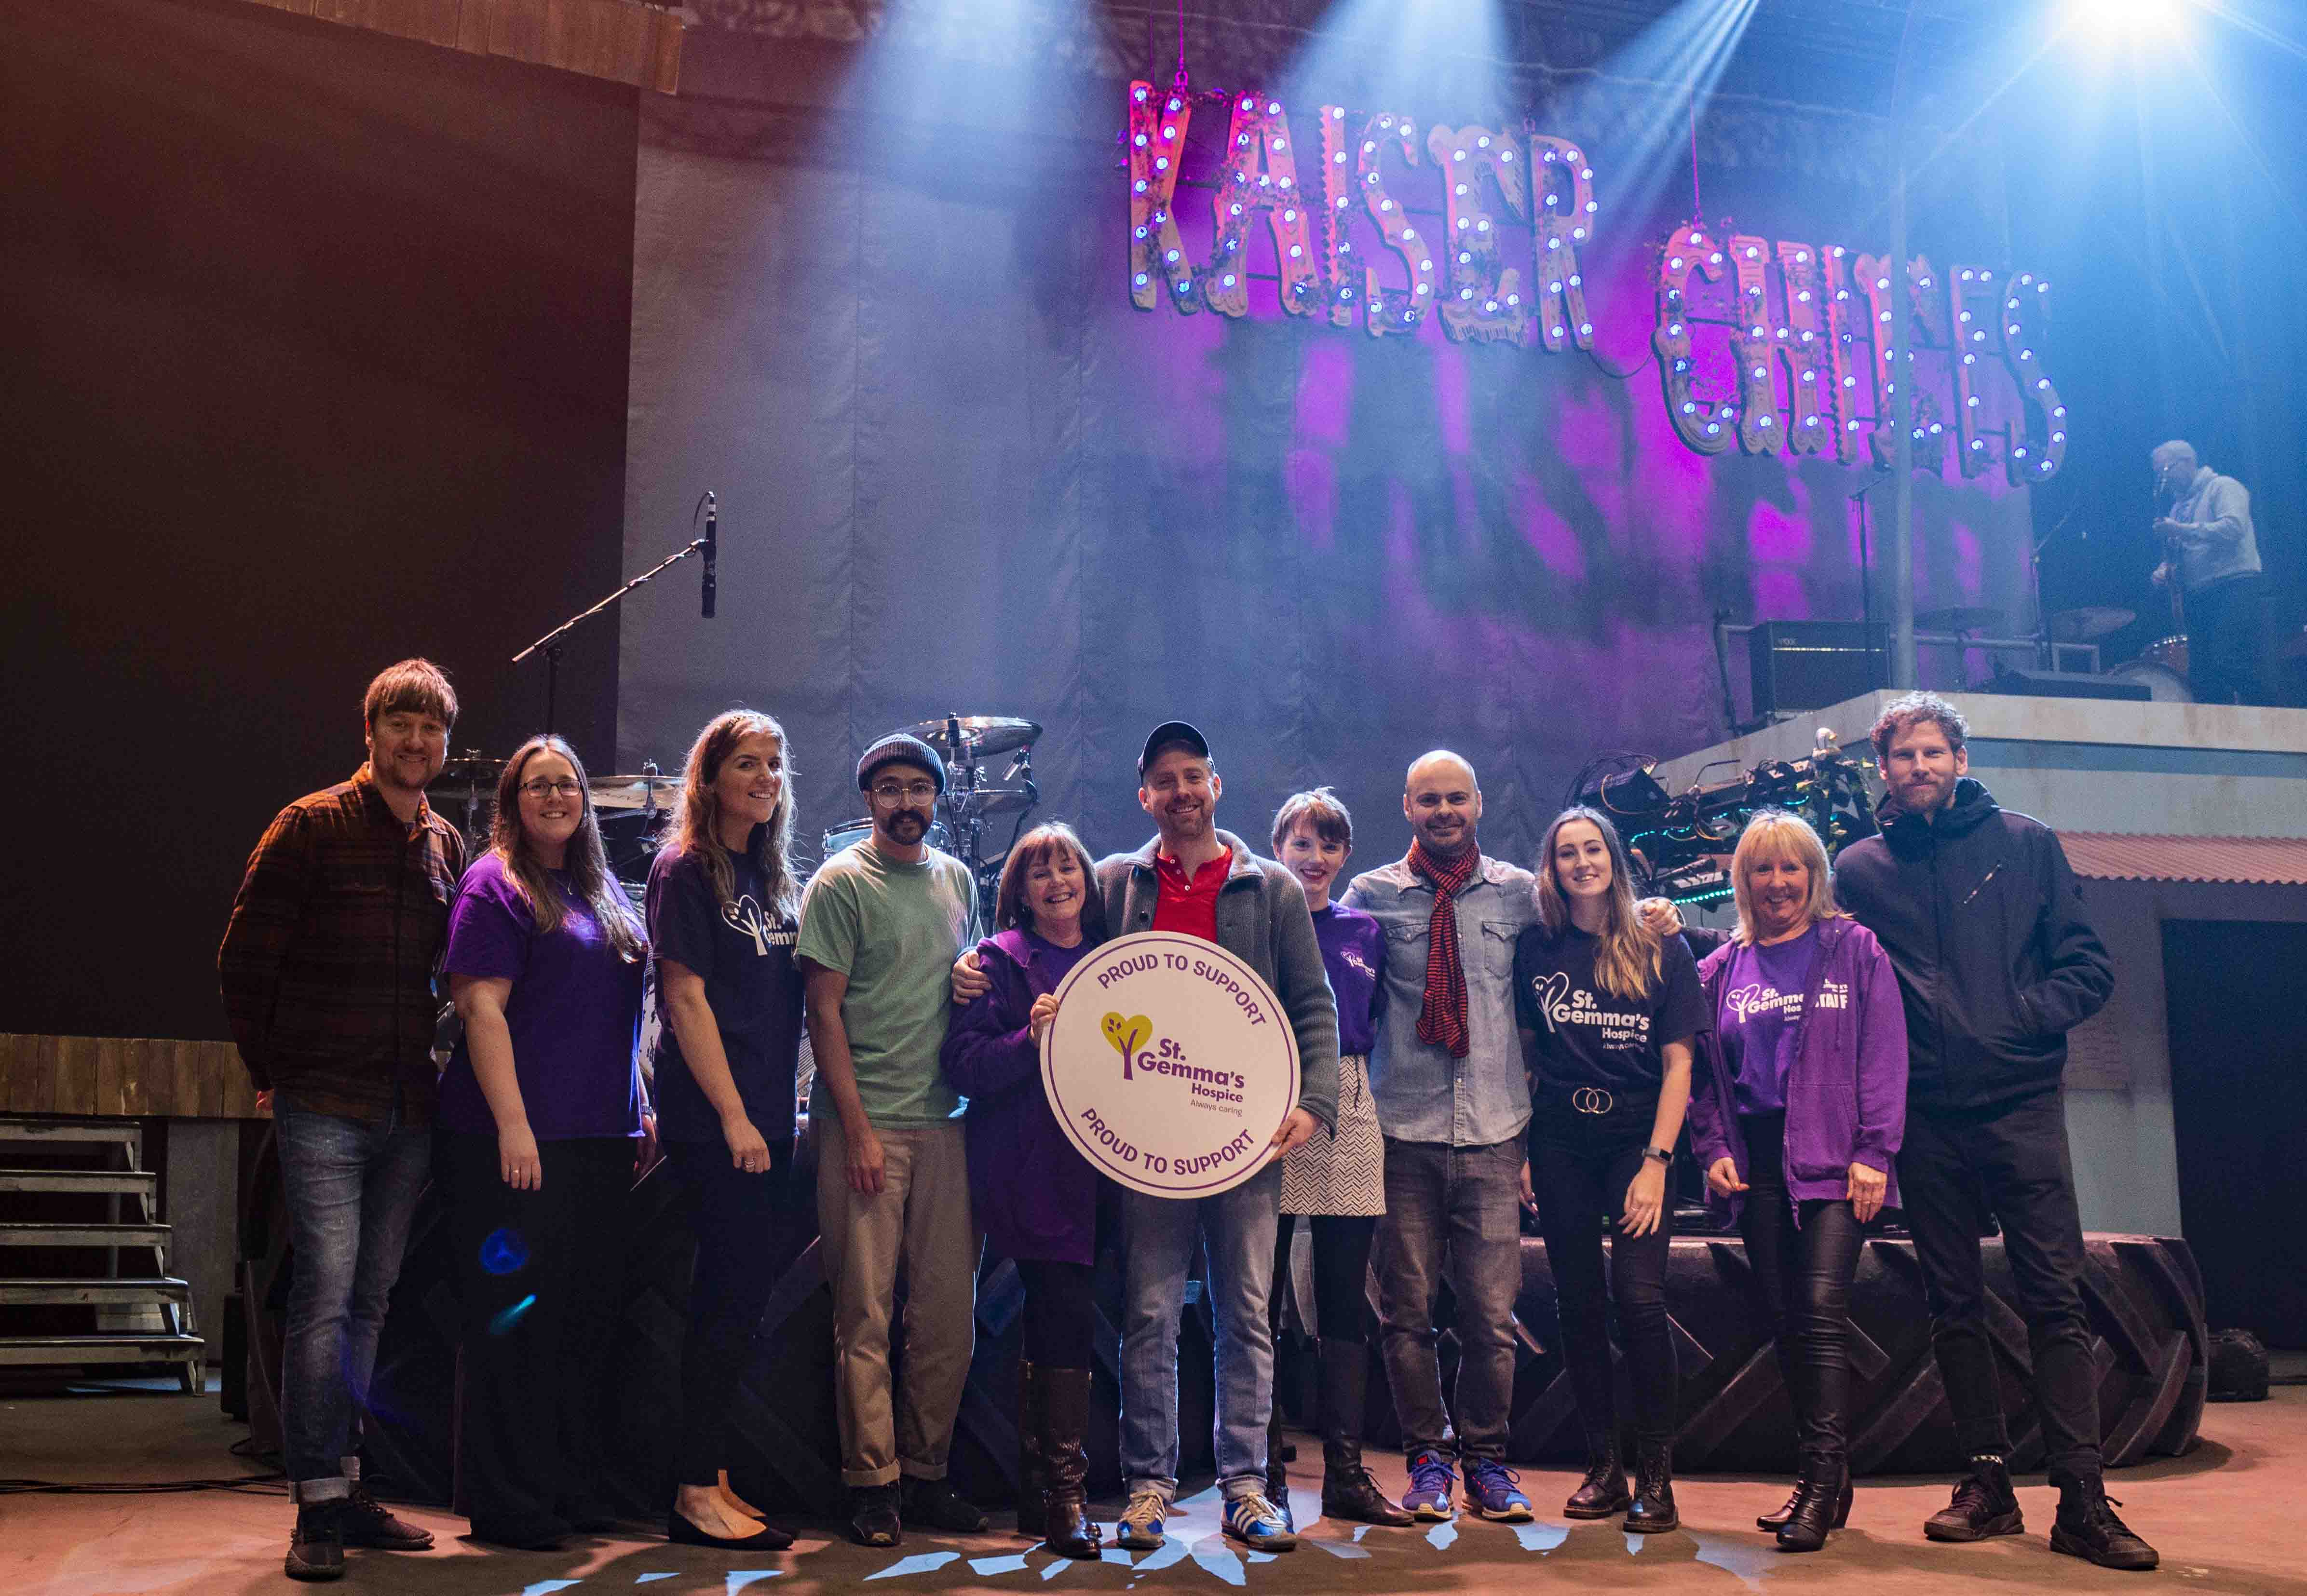 Kaiser Chiefs, with St Gemma's staff, holding 'Proud to Support' sign